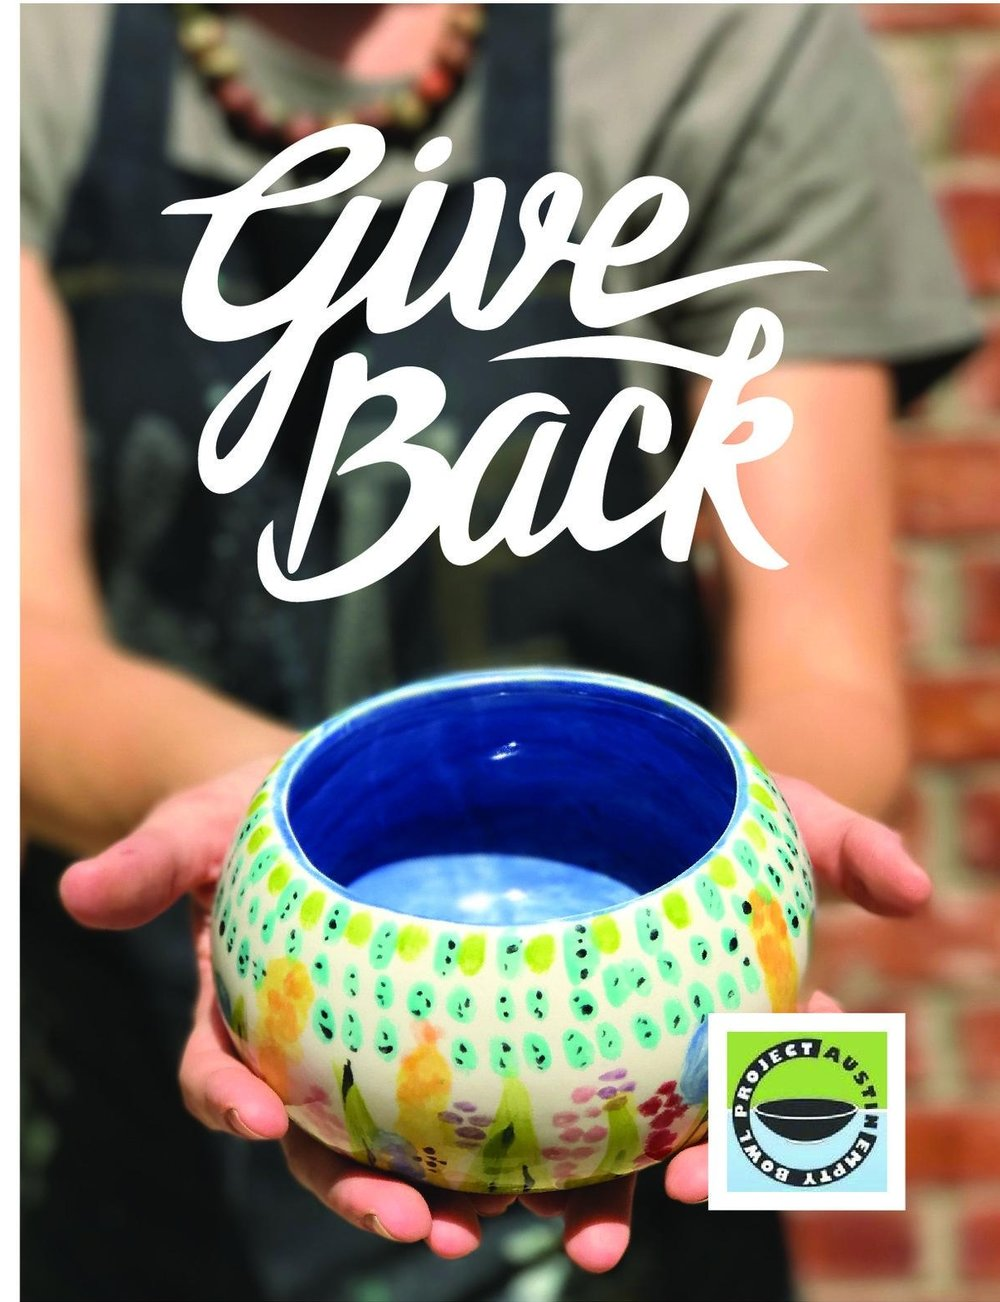 10th Annual Empty Bowls Project - April 4th